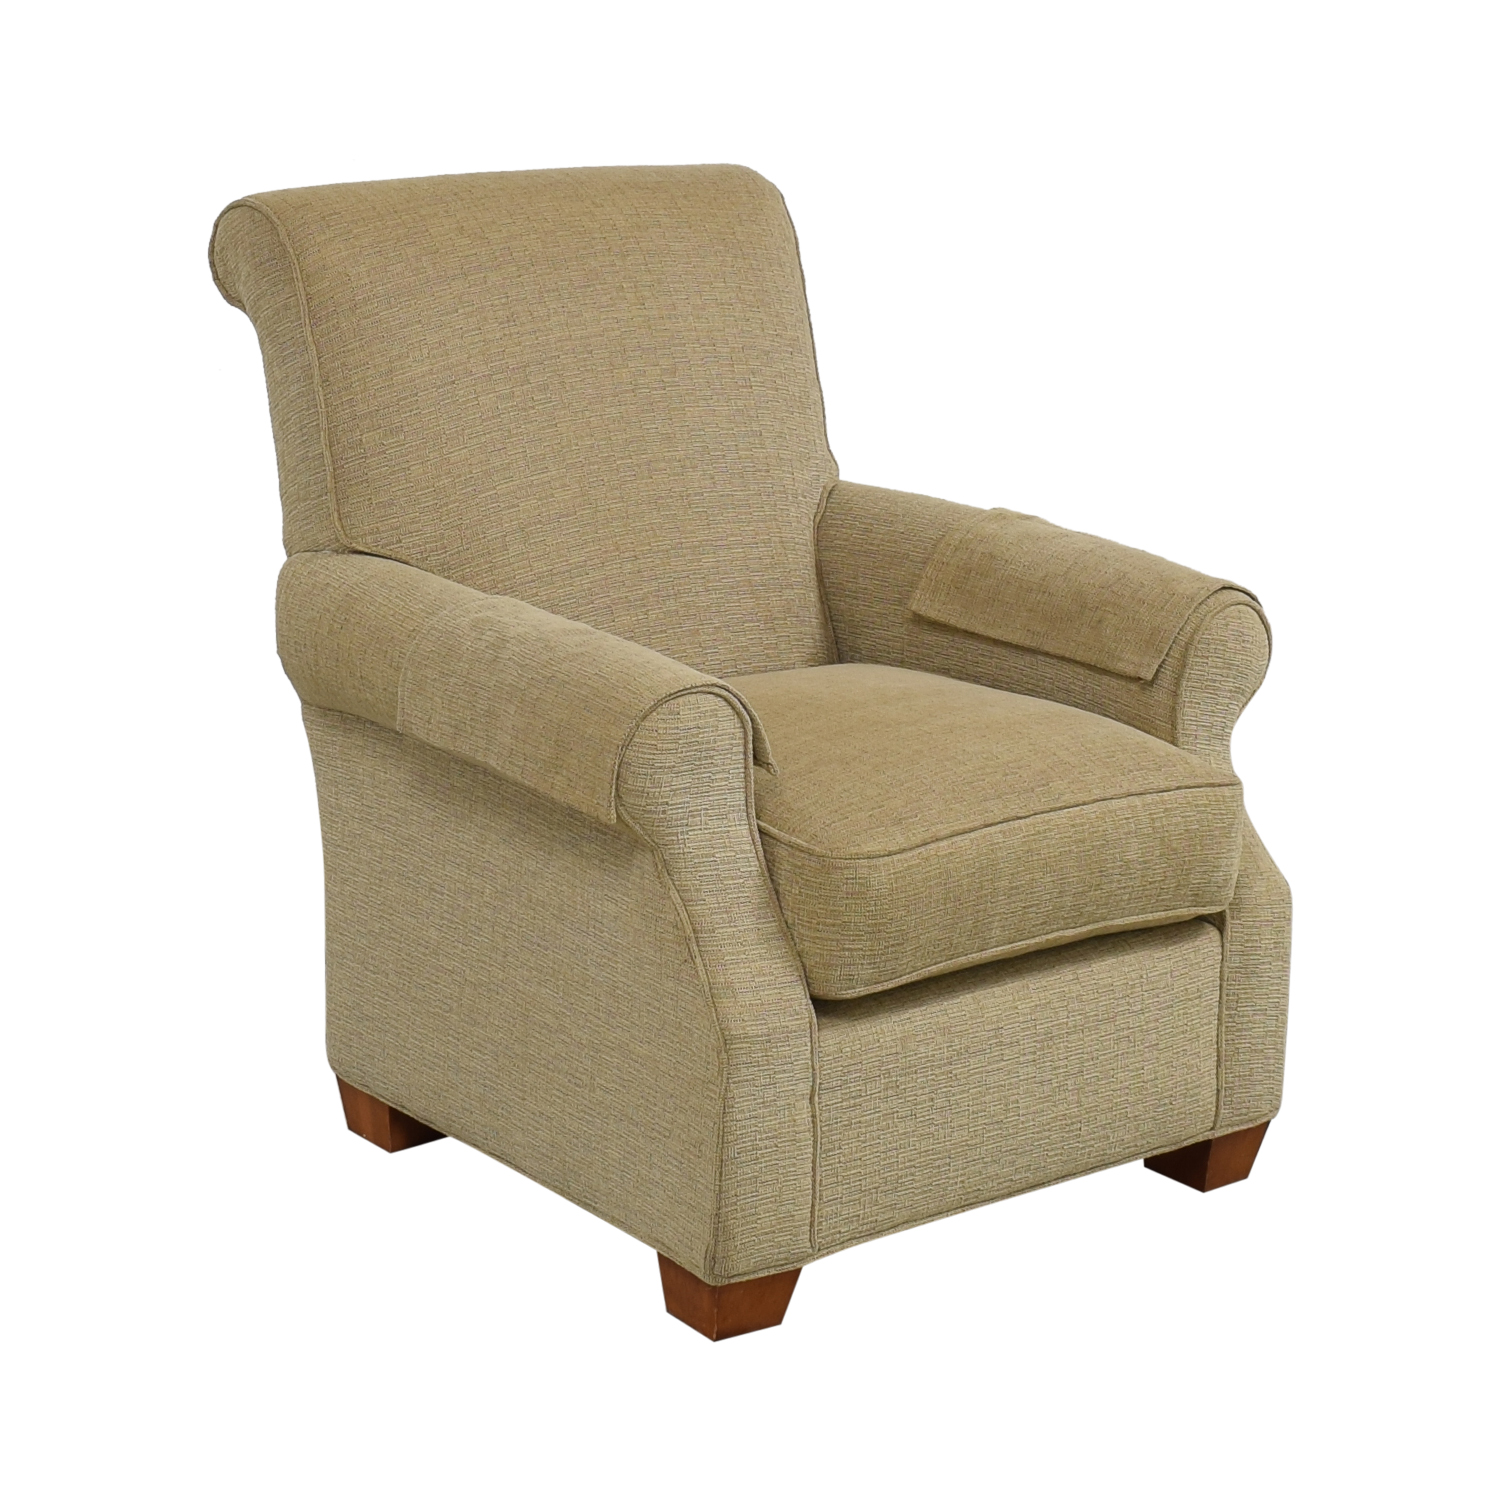 Macy's Macy's Upholstered Accent Chair nj